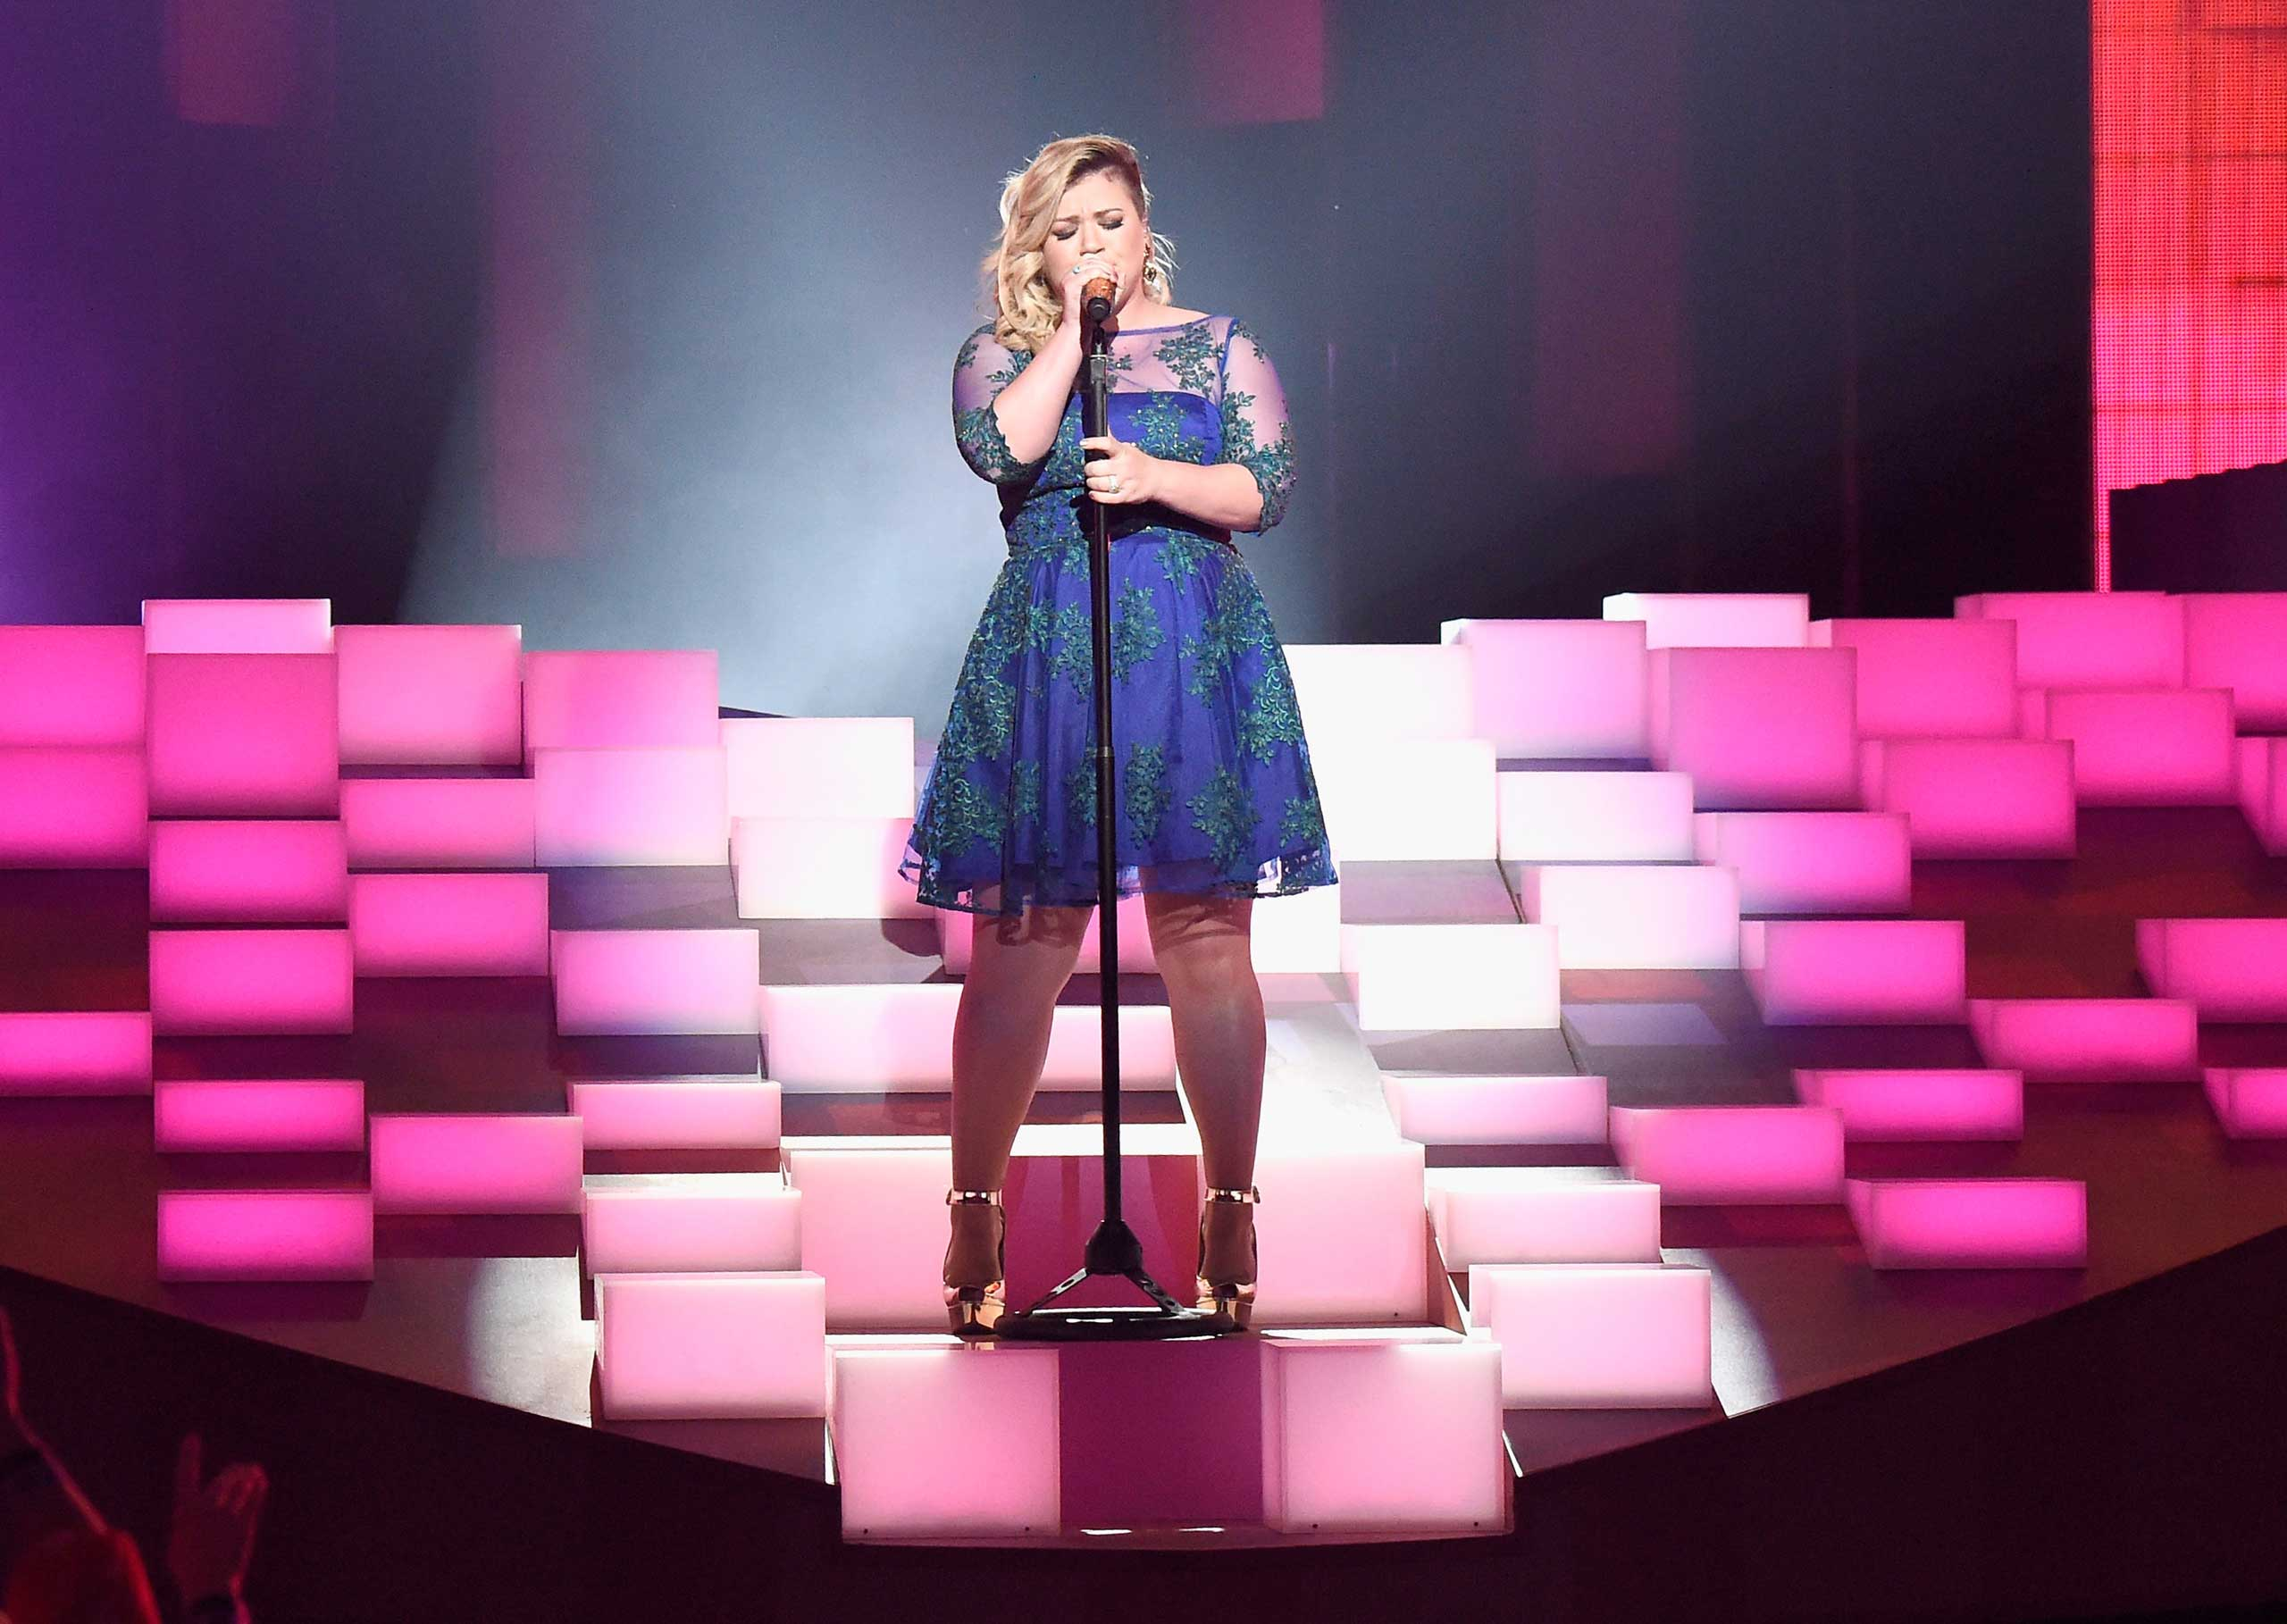 "<b>Kelly Clarkson</b>, season 1 winner, performs ""Heartbeat Song"" onstage during the 2015 iHeartRadio Music Awards at The Shrine Auditorium in Los Angeles on March 29, 2015."